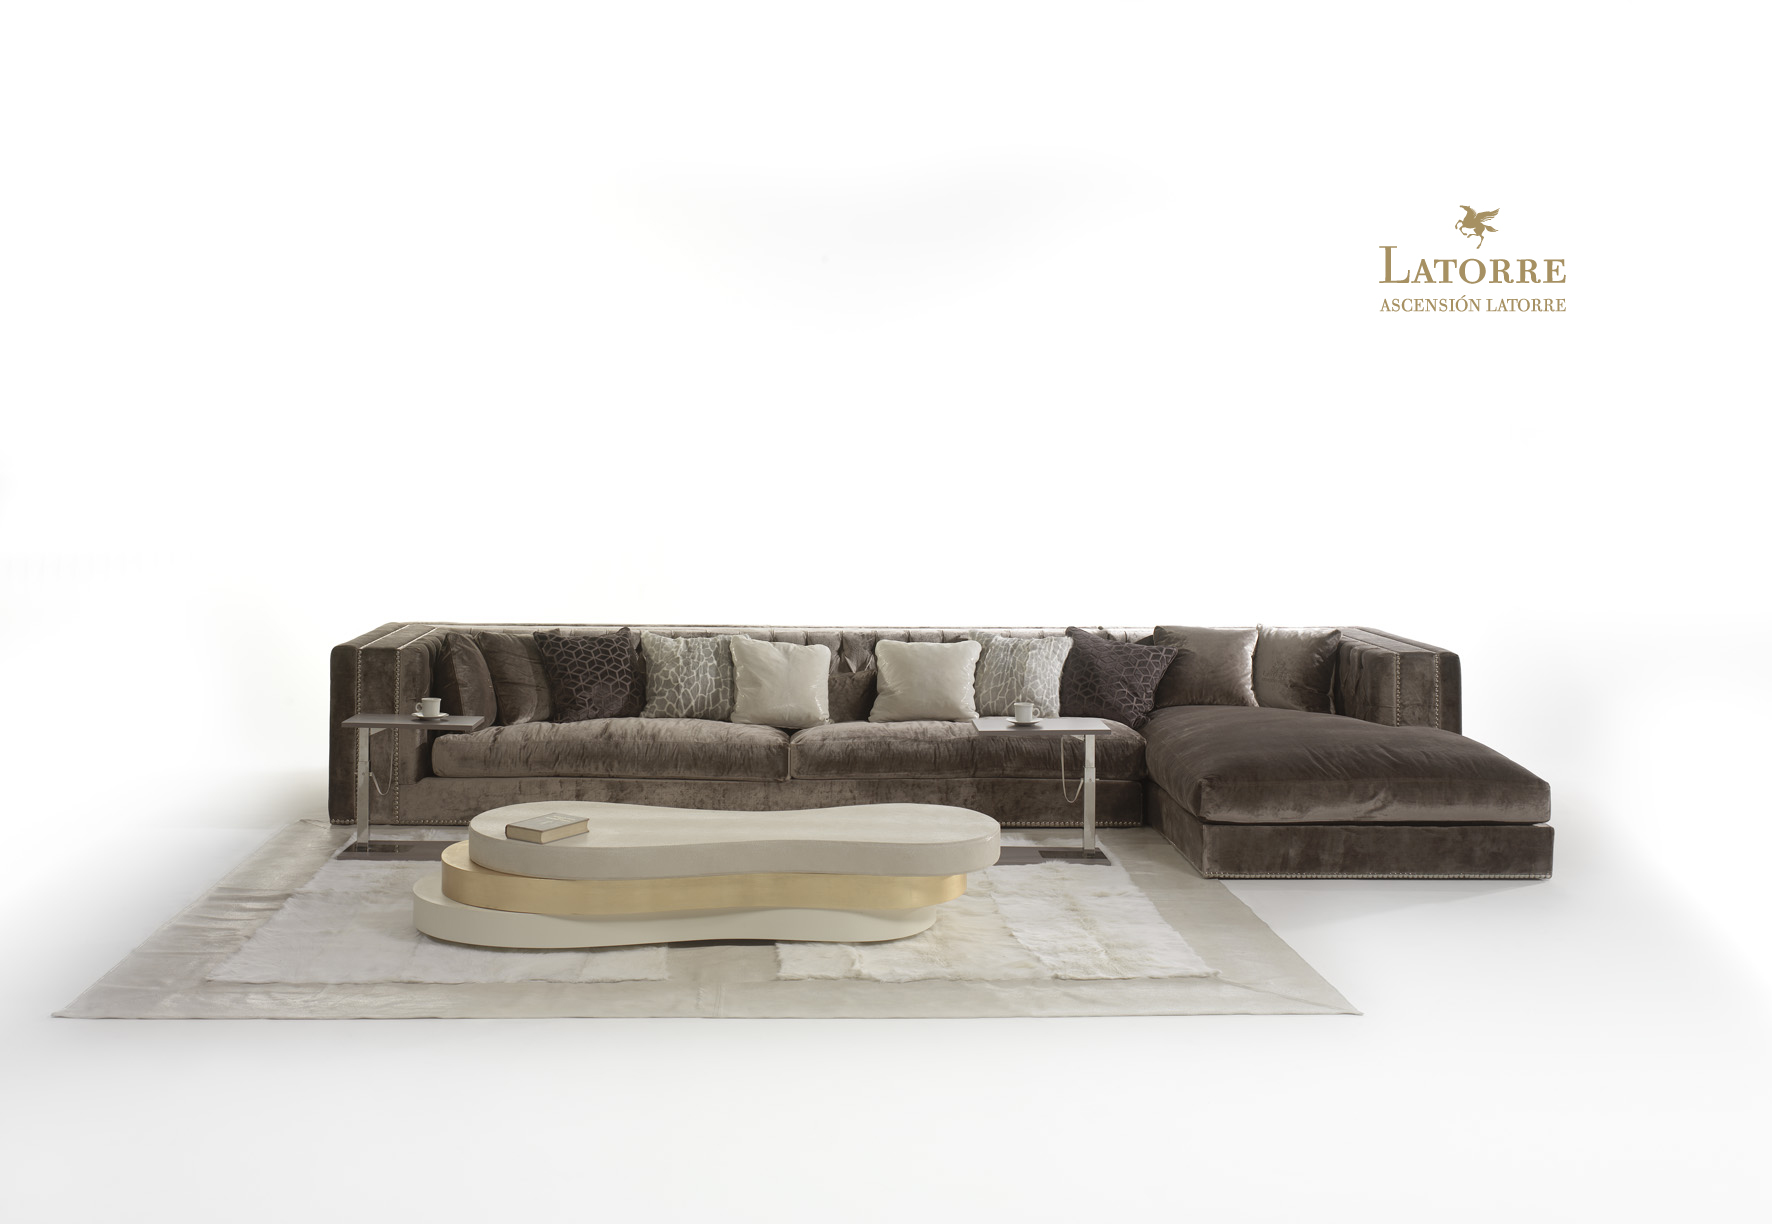 Get The Luxe Comfort With The Grand National Sofas Of Latorre  # Muebles Didecor